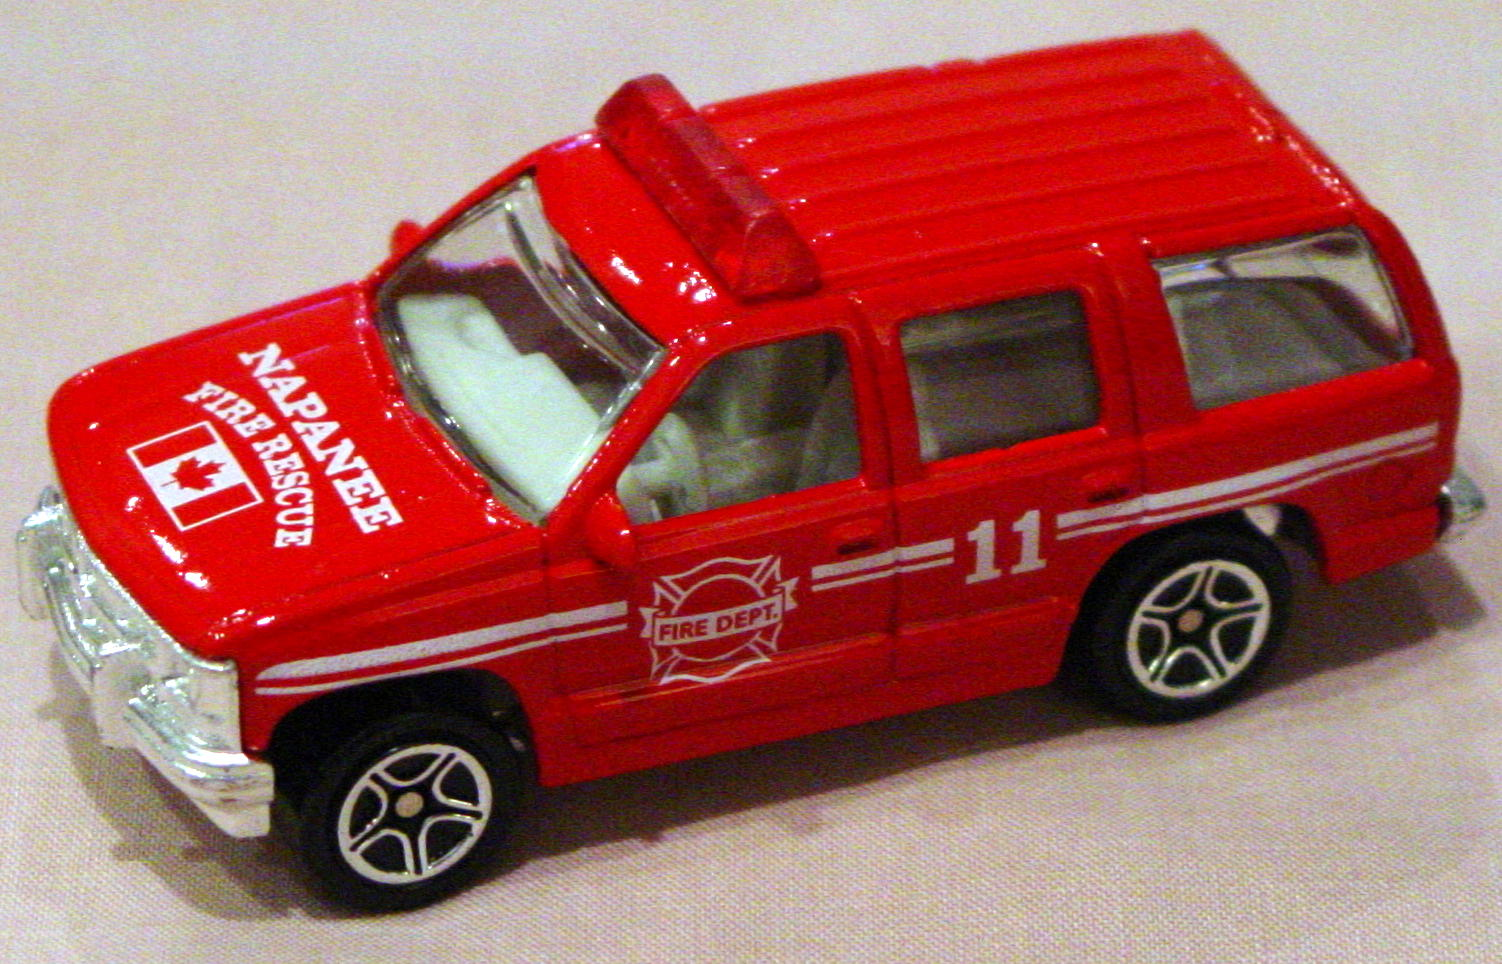 ASAP-CCI 30 I 27 - Chevy Tahoe Police Red Napanee Fire Rescue CCI